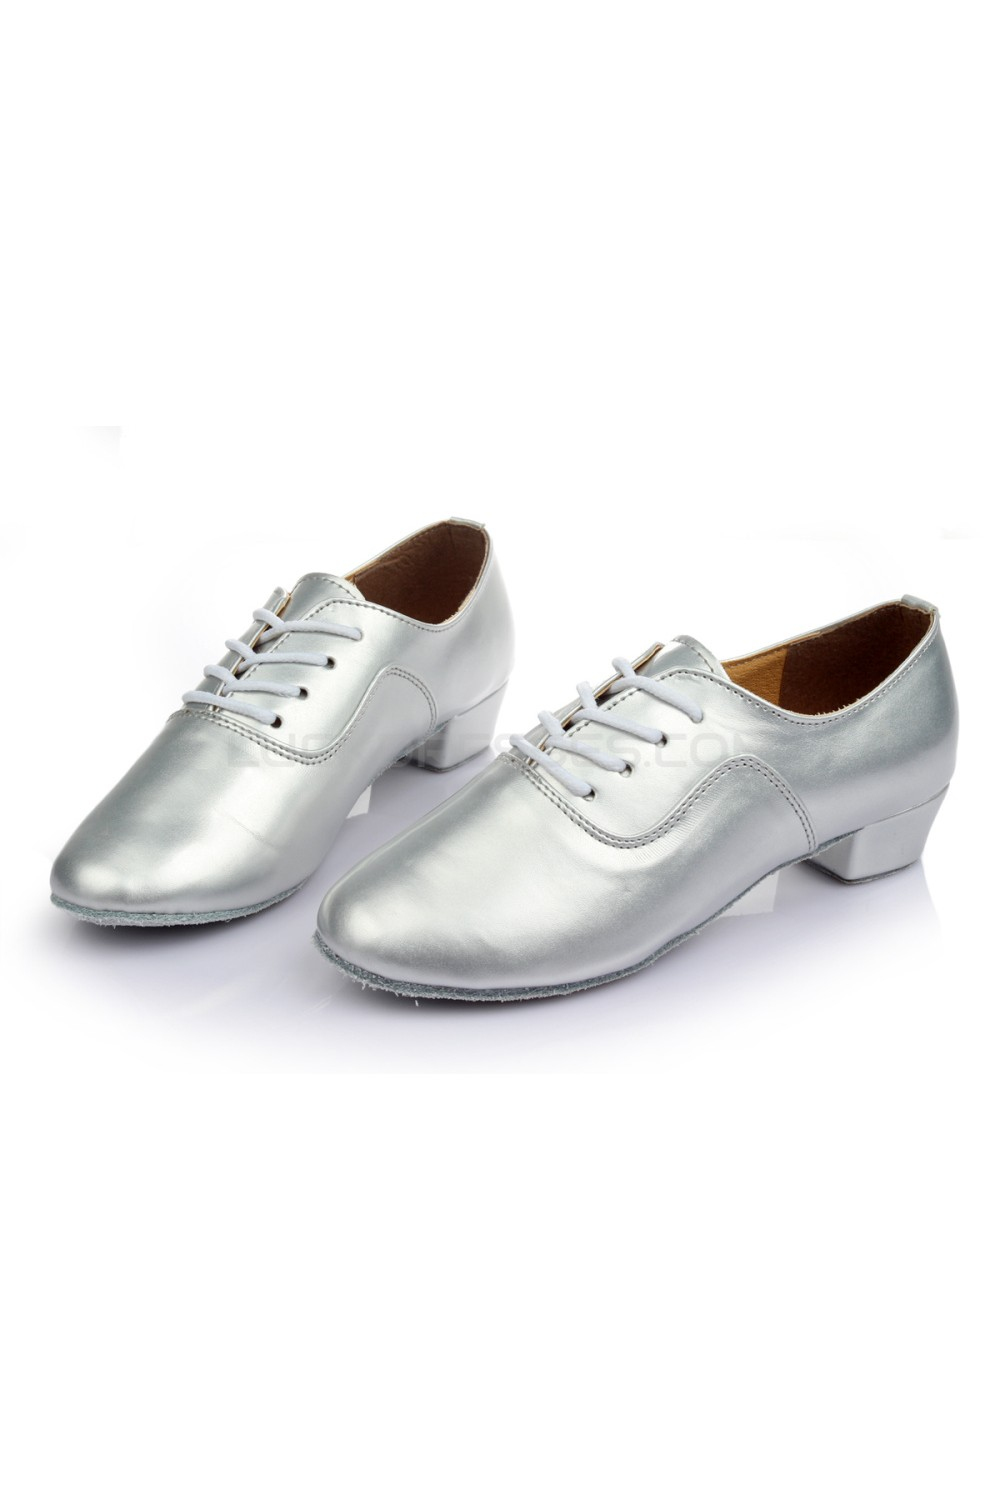 e8b33bd76 Men's Kids' Silver Leatherette Modern Ballroom Latin Dance Shoes Dance  Sneakers Flat Heel D603004